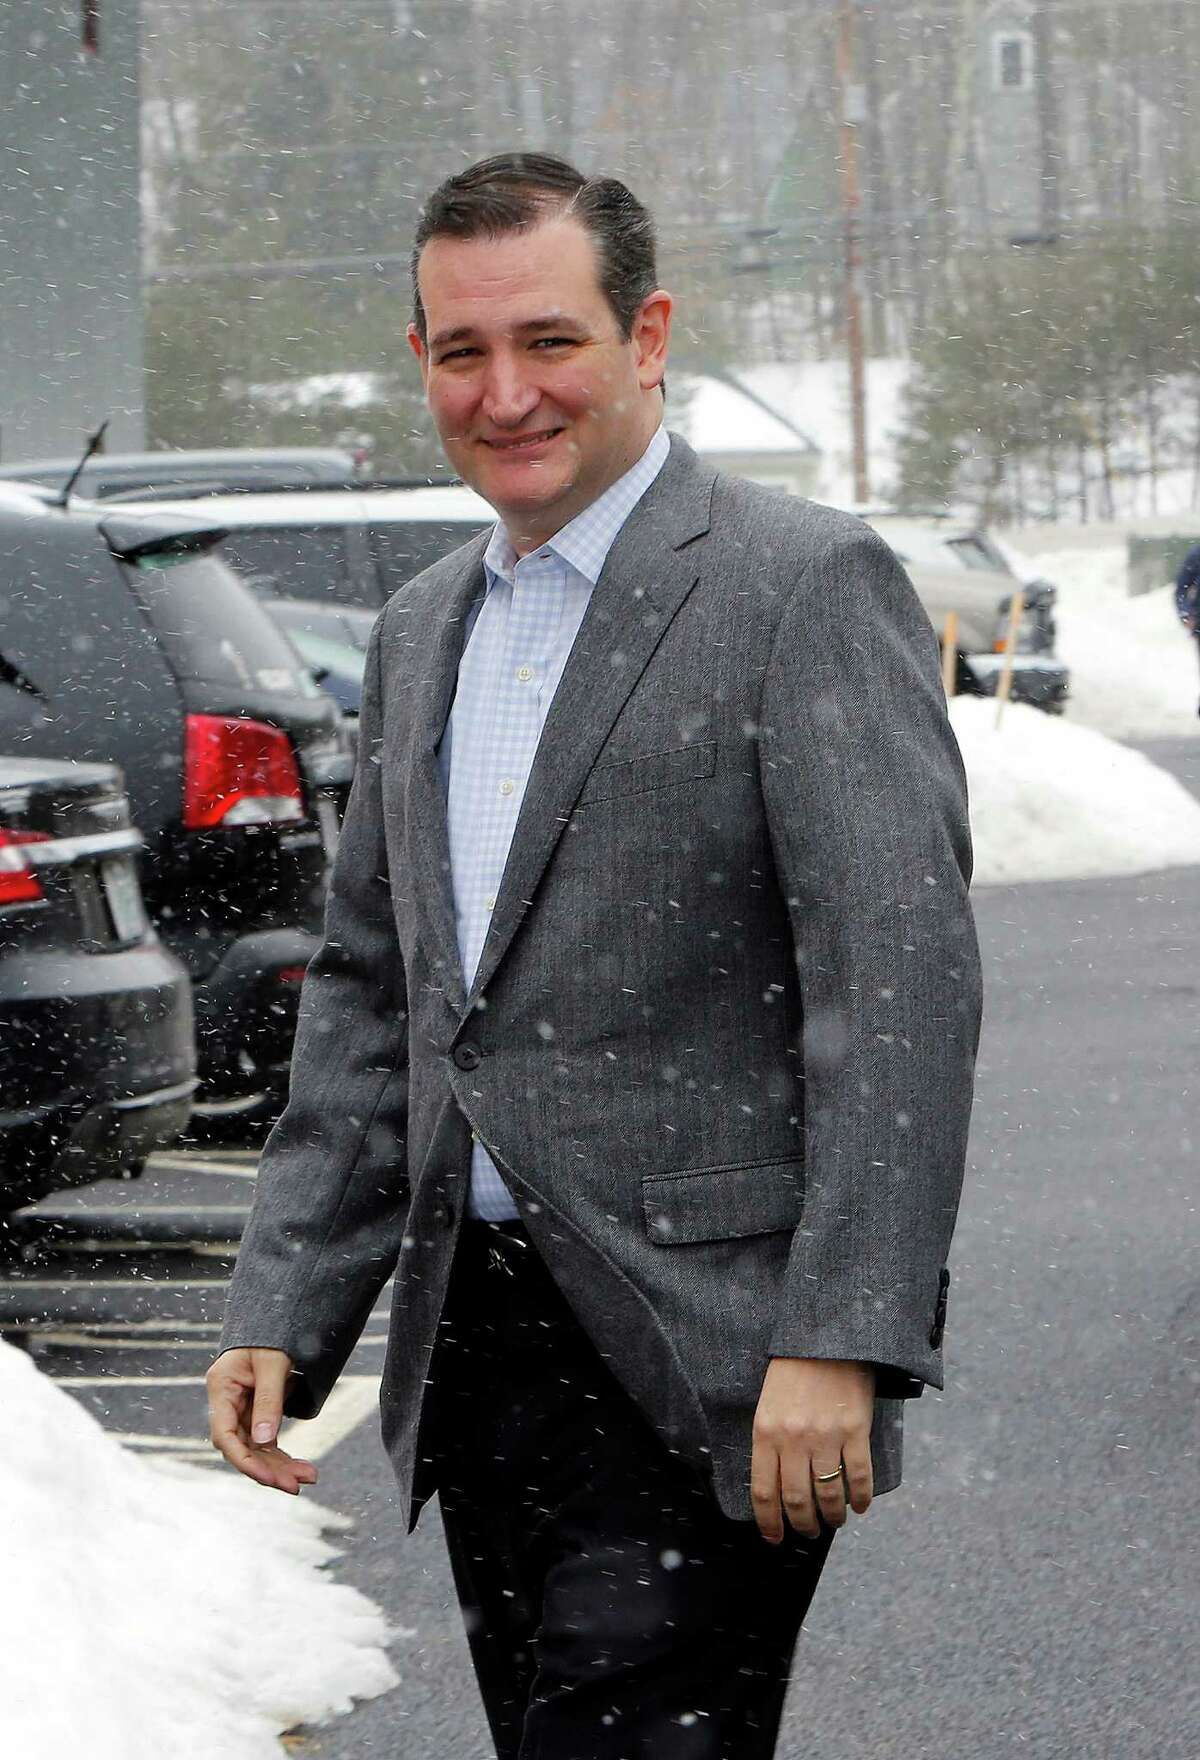 Sen. Ted Cruz, R-Texas, a tea party favorite and possible presidential candidate in 2016, arrives for a Strafford County Republican Committee Chili and Chat on Sunday, March 15, 2015, in Barrington, N.H. (AP Photo/Jim Cole)